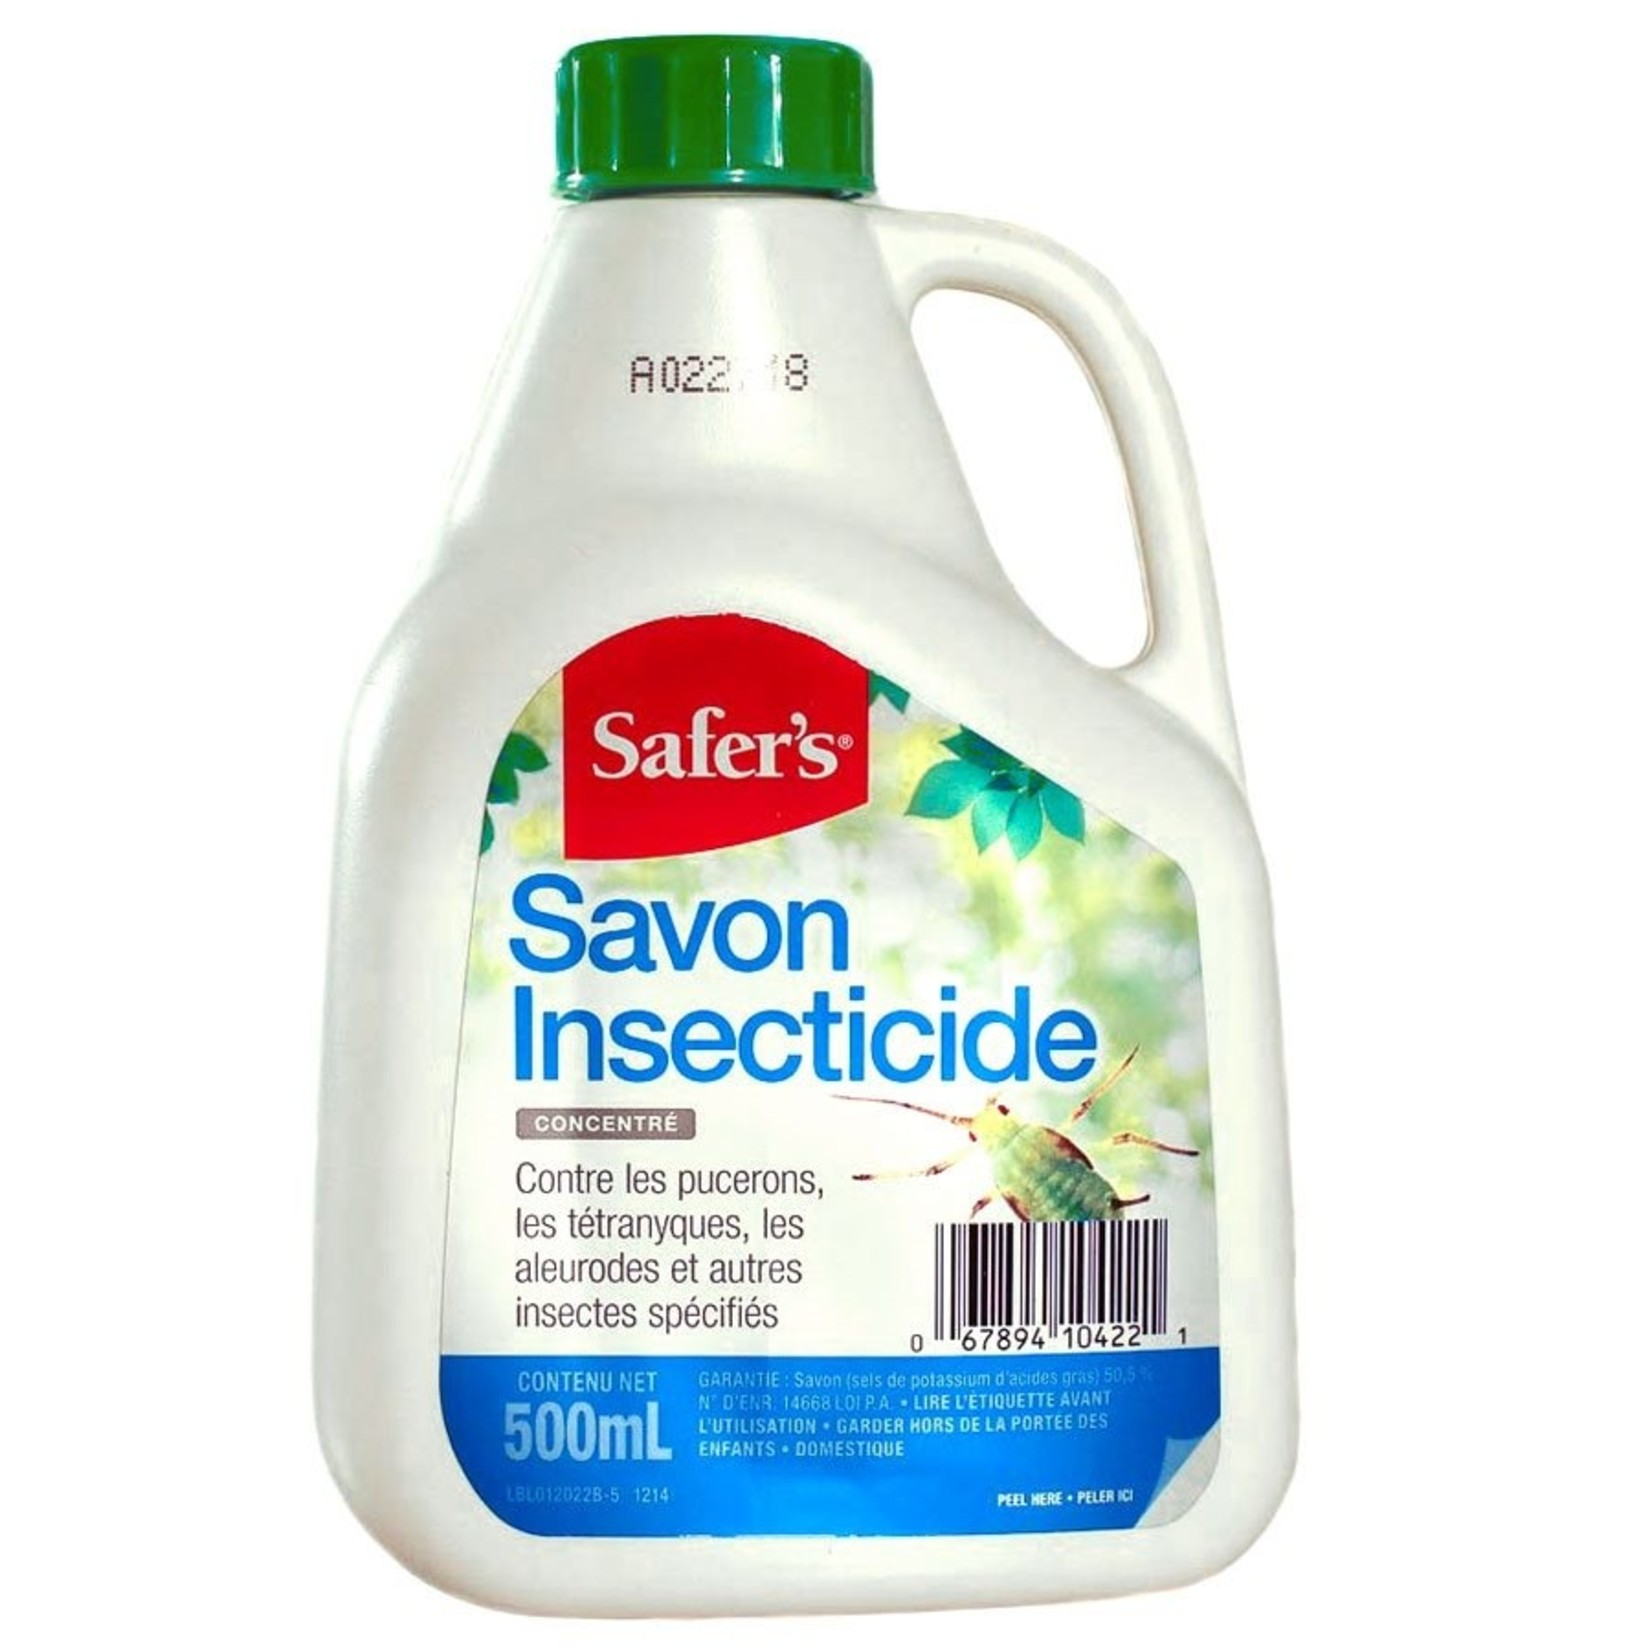 SAFERS SAFER'S CONCENTRATED INSECTICIDAL SOAP 500 ML